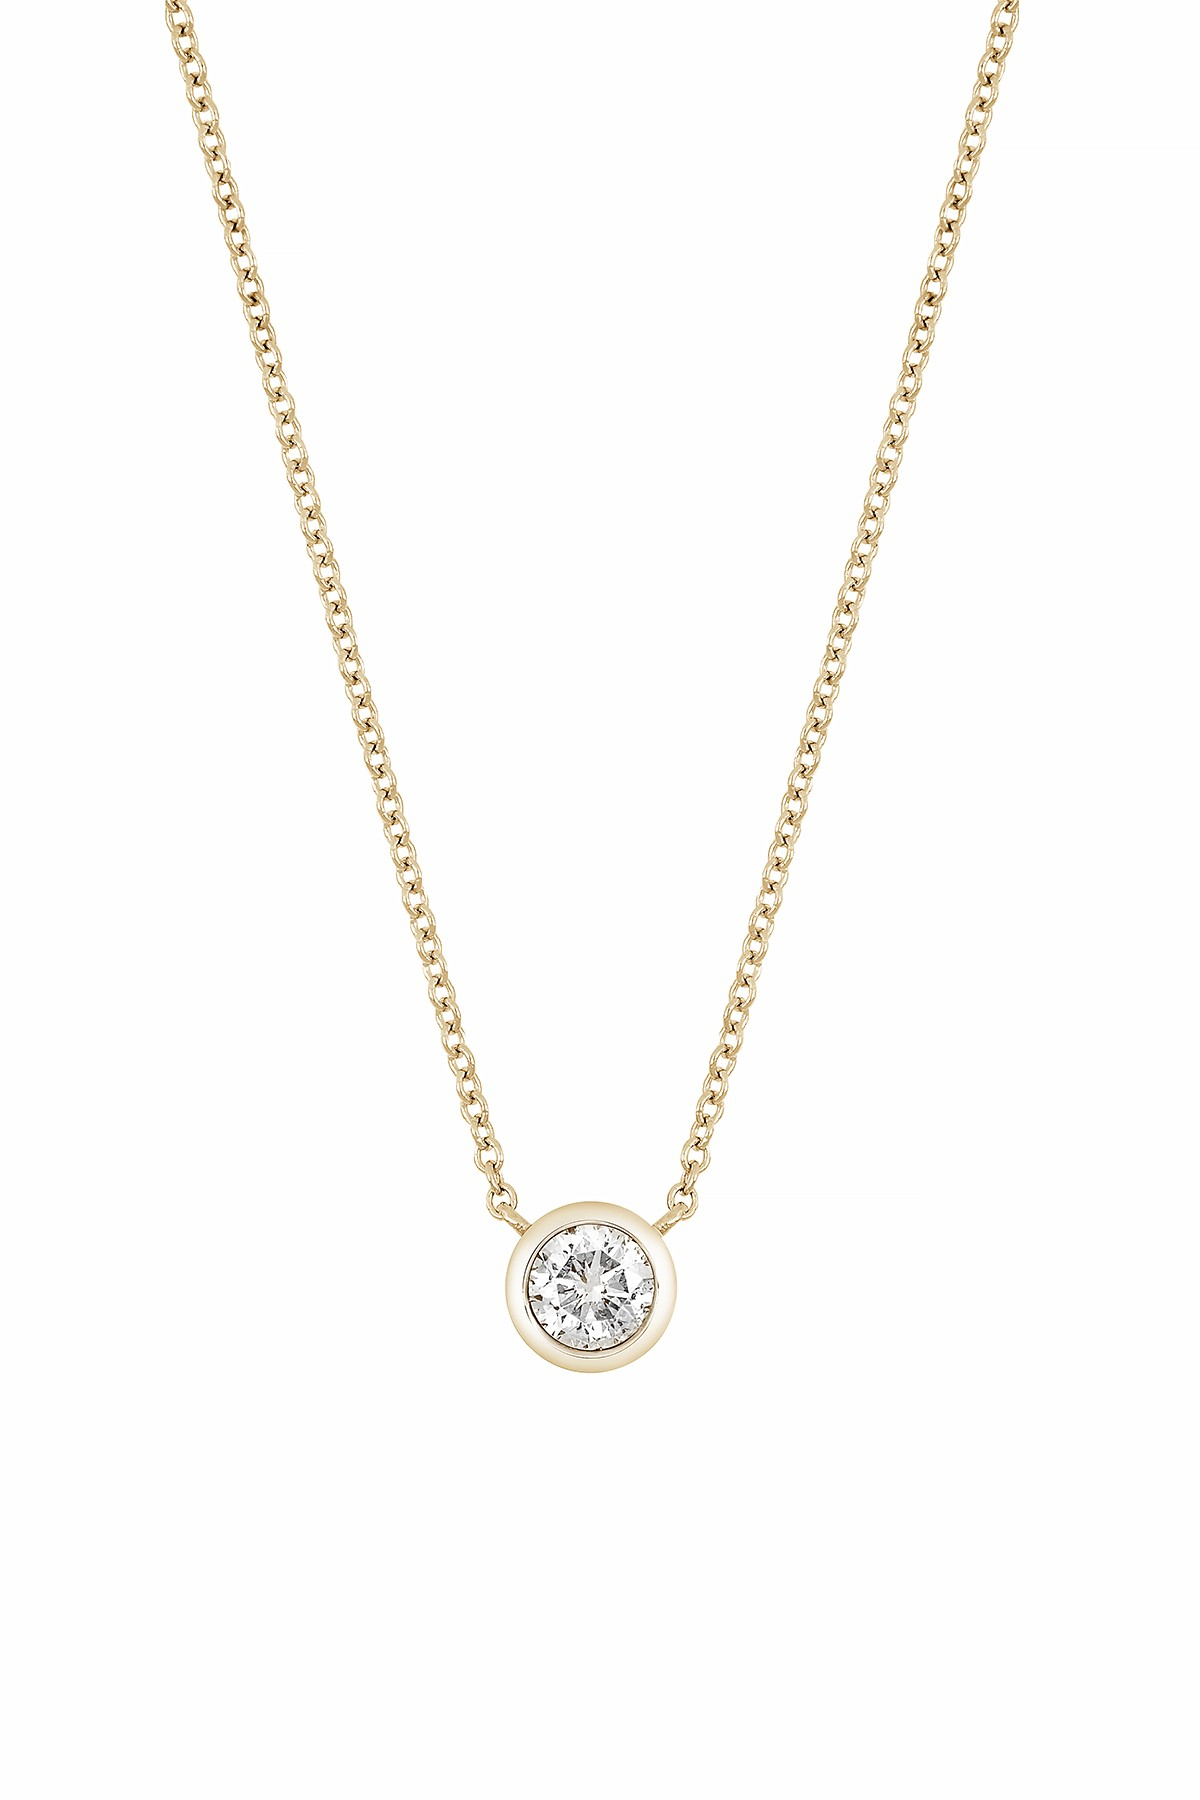 Bony Levy | 14k Yellow Gold Bezel Set Diamond Solitaire Pendant Necklace – (View 18 of 25)